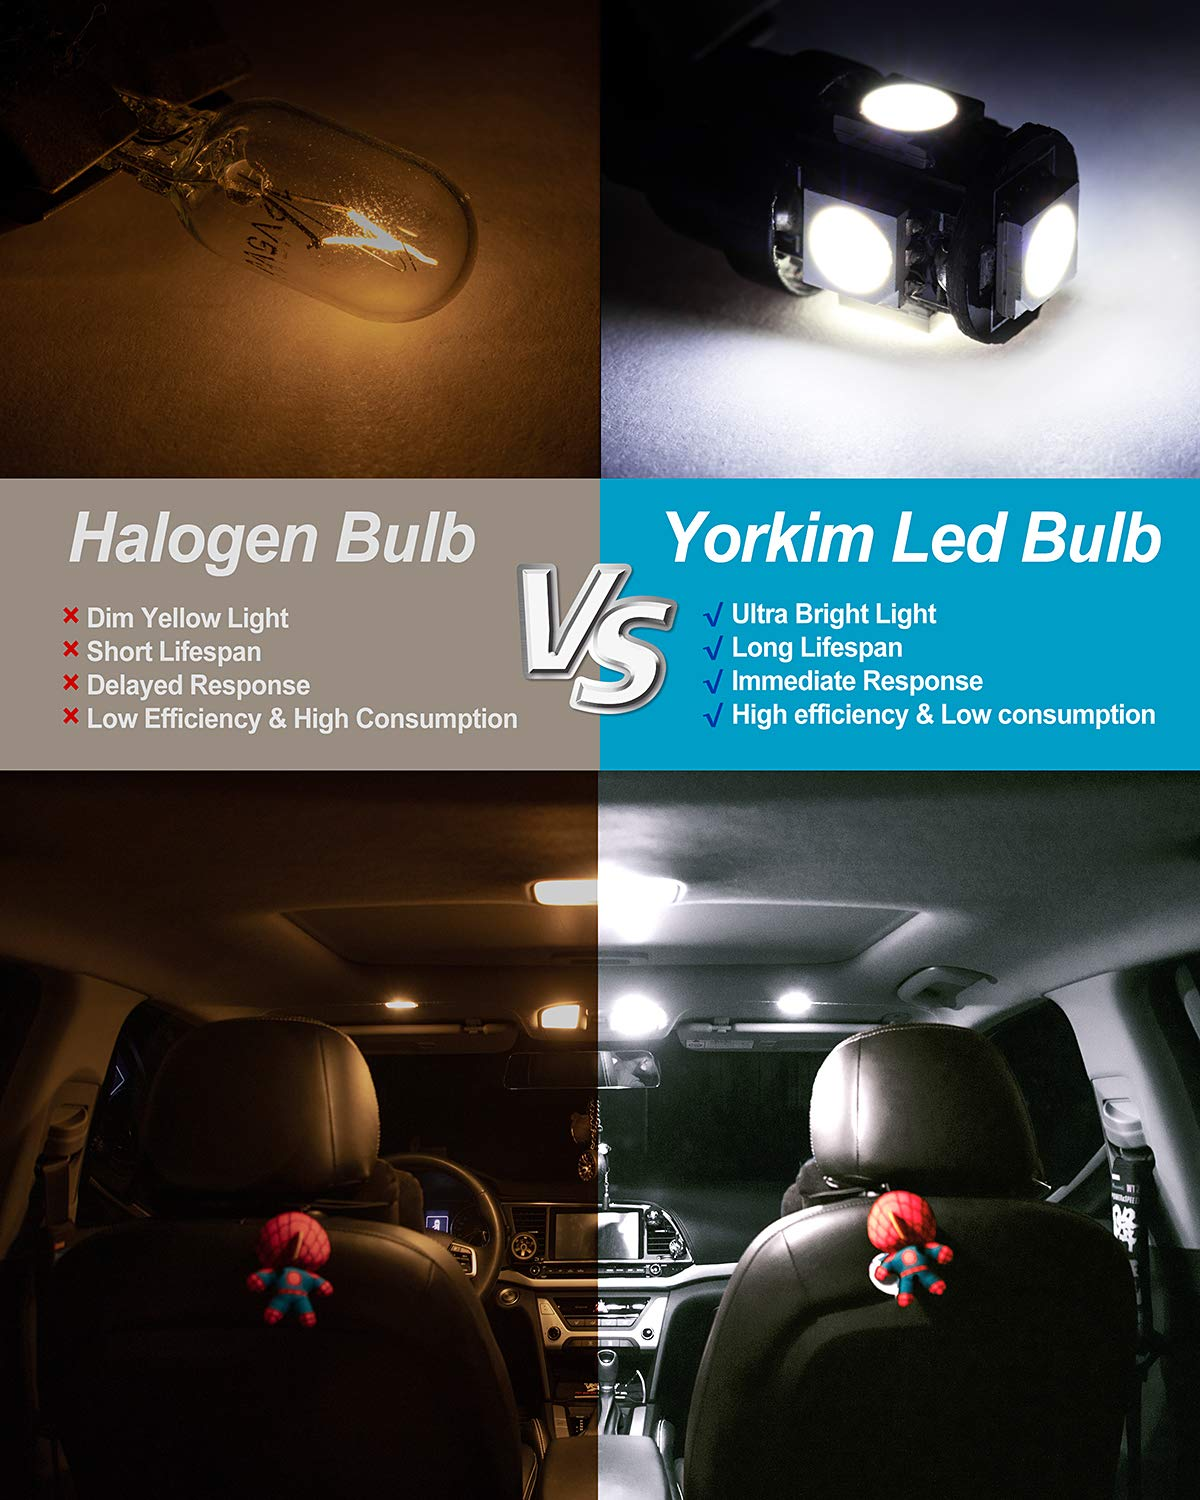 Yorkim 194 LED Bulbs White 6000k Super Bright 5th Generation, T10 LED Bulbs, 168 LED Bulb for Car Interior Dome Map Door Courtesy License Plate Lights W5W 2825, Pack of 10